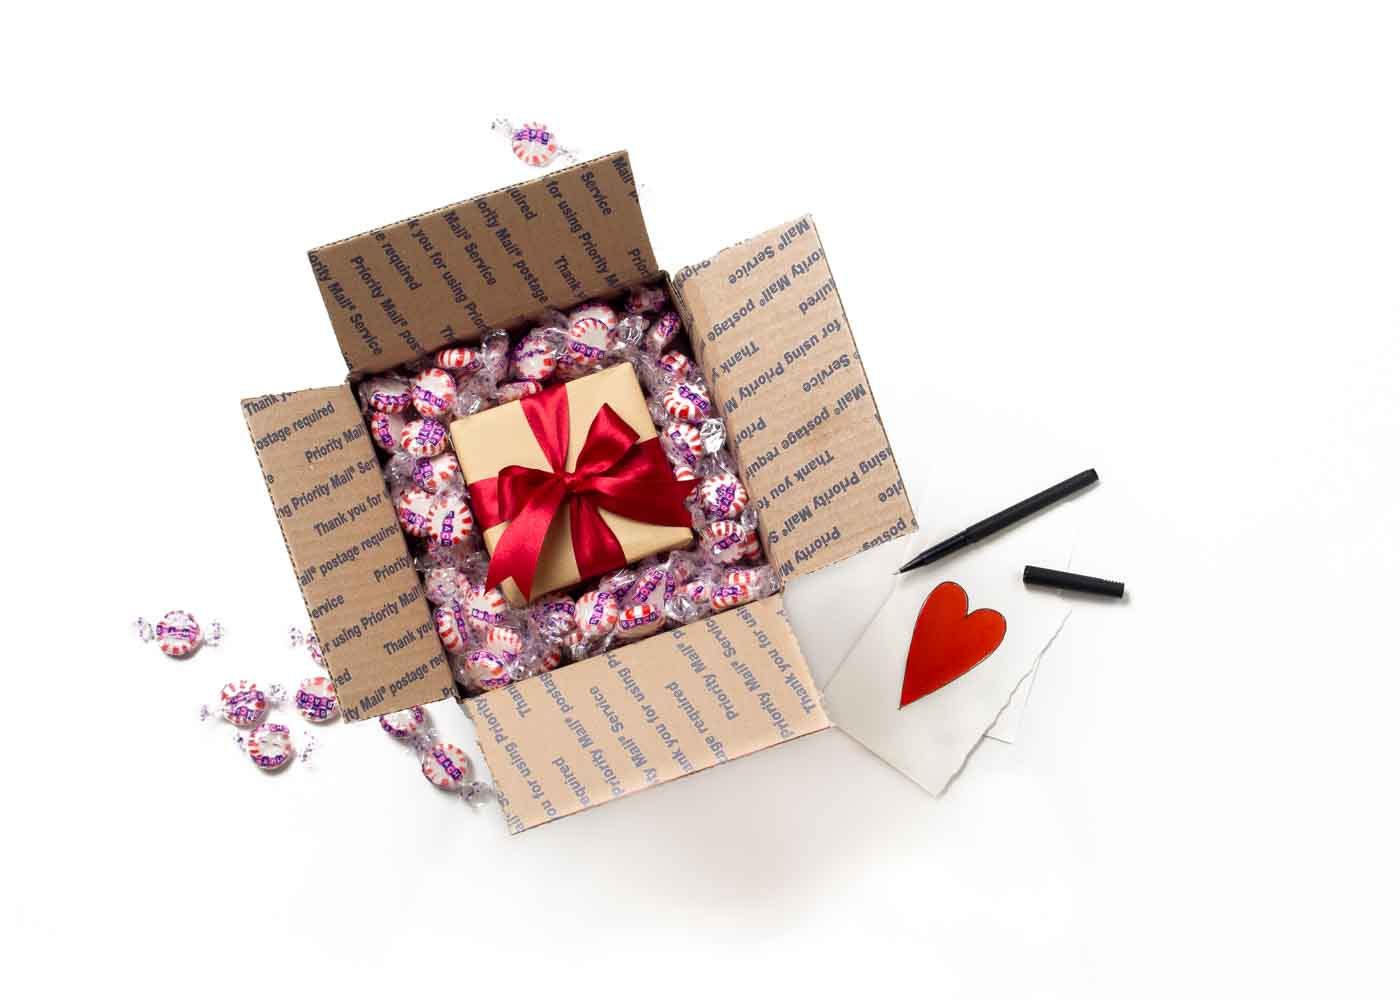 Mailing a gift? Consider substituting more traditional packing materials with your recipient's favorite candy.